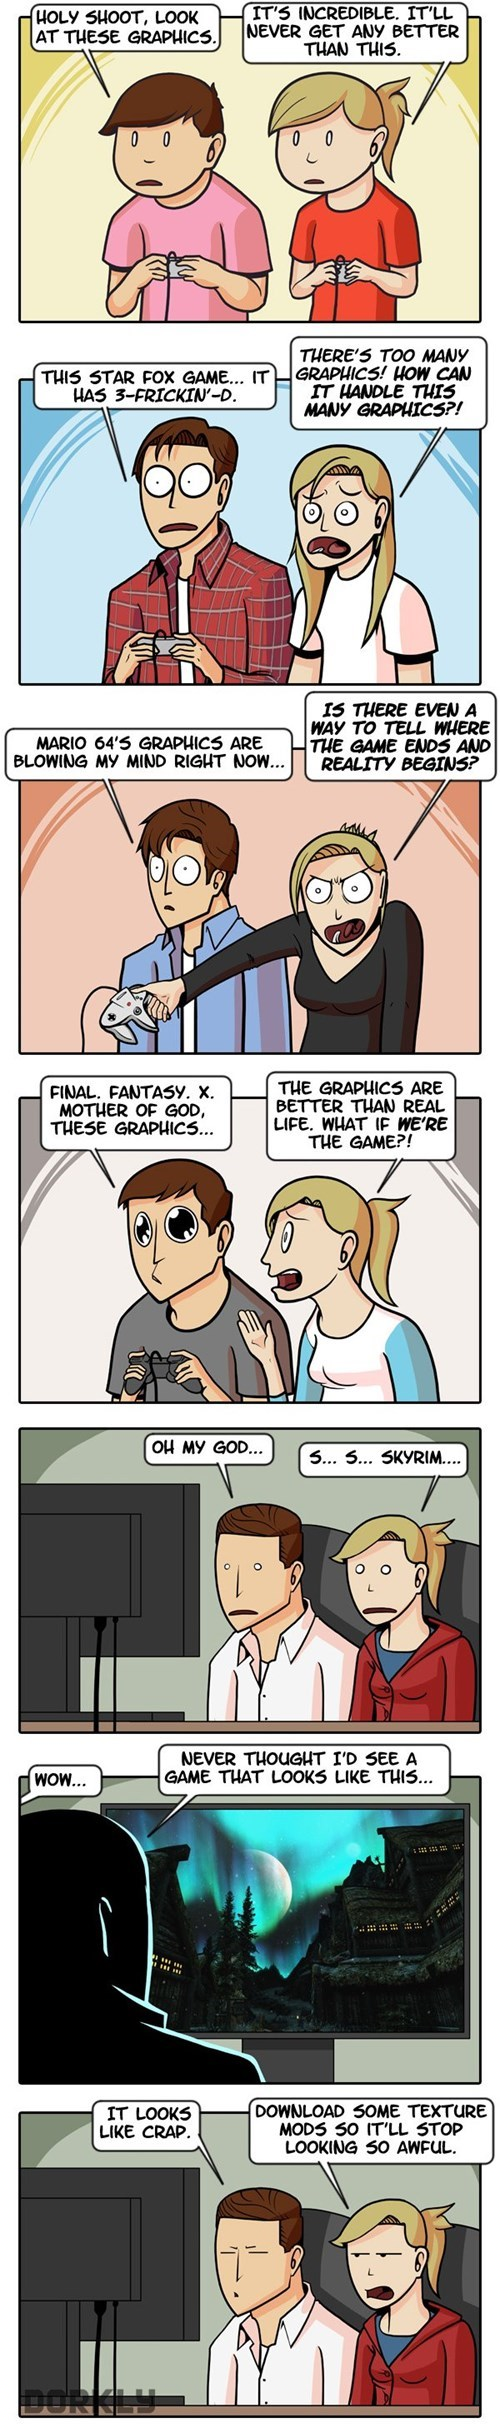 graphics video games web comics - 7859627520